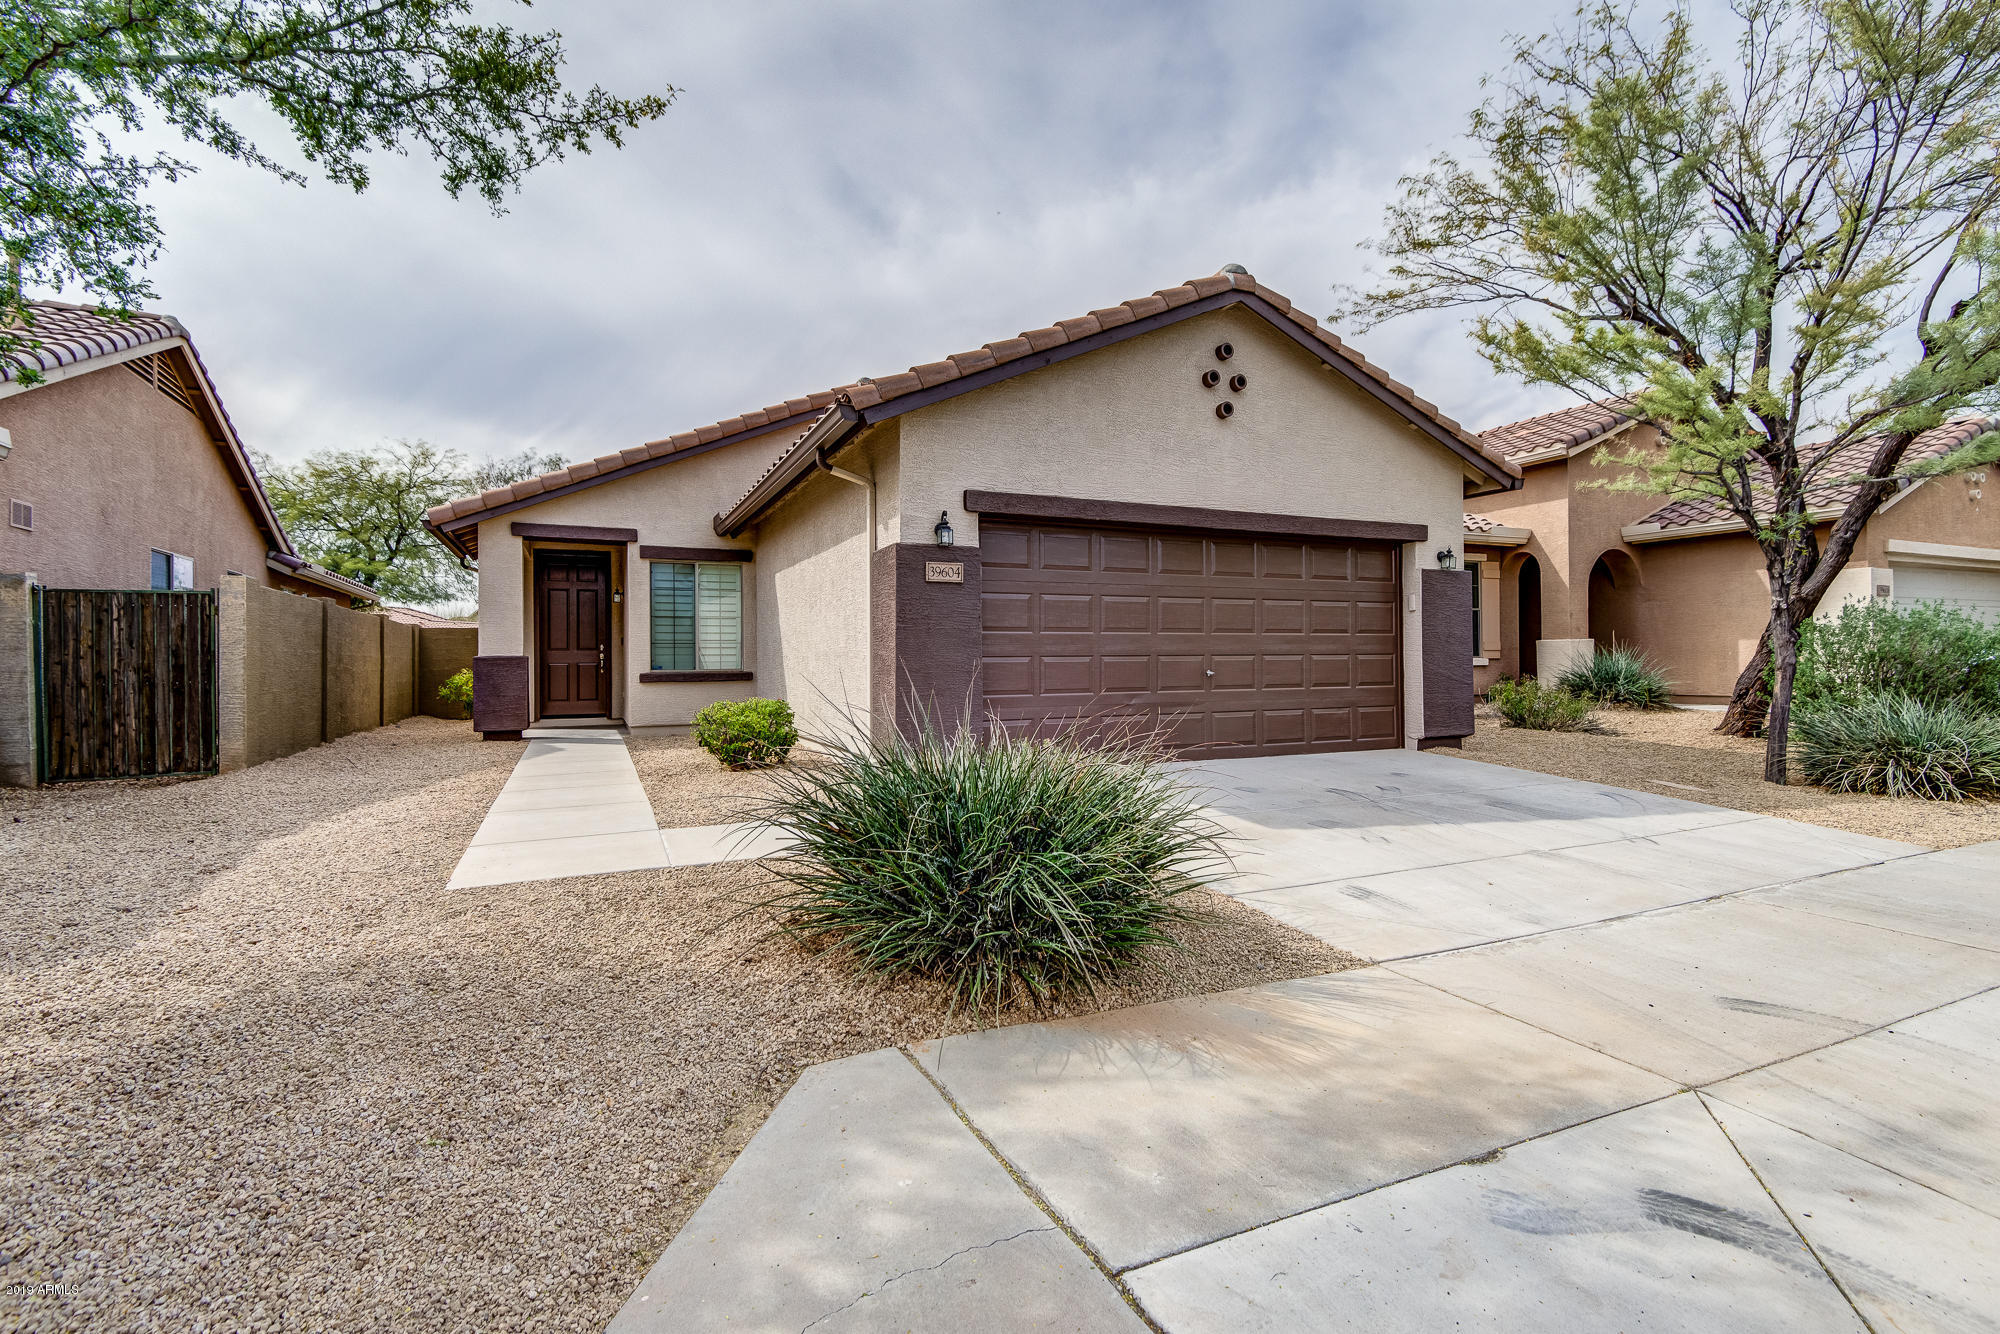 39604 N HARBOUR TOWN Way, Anthem, Arizona